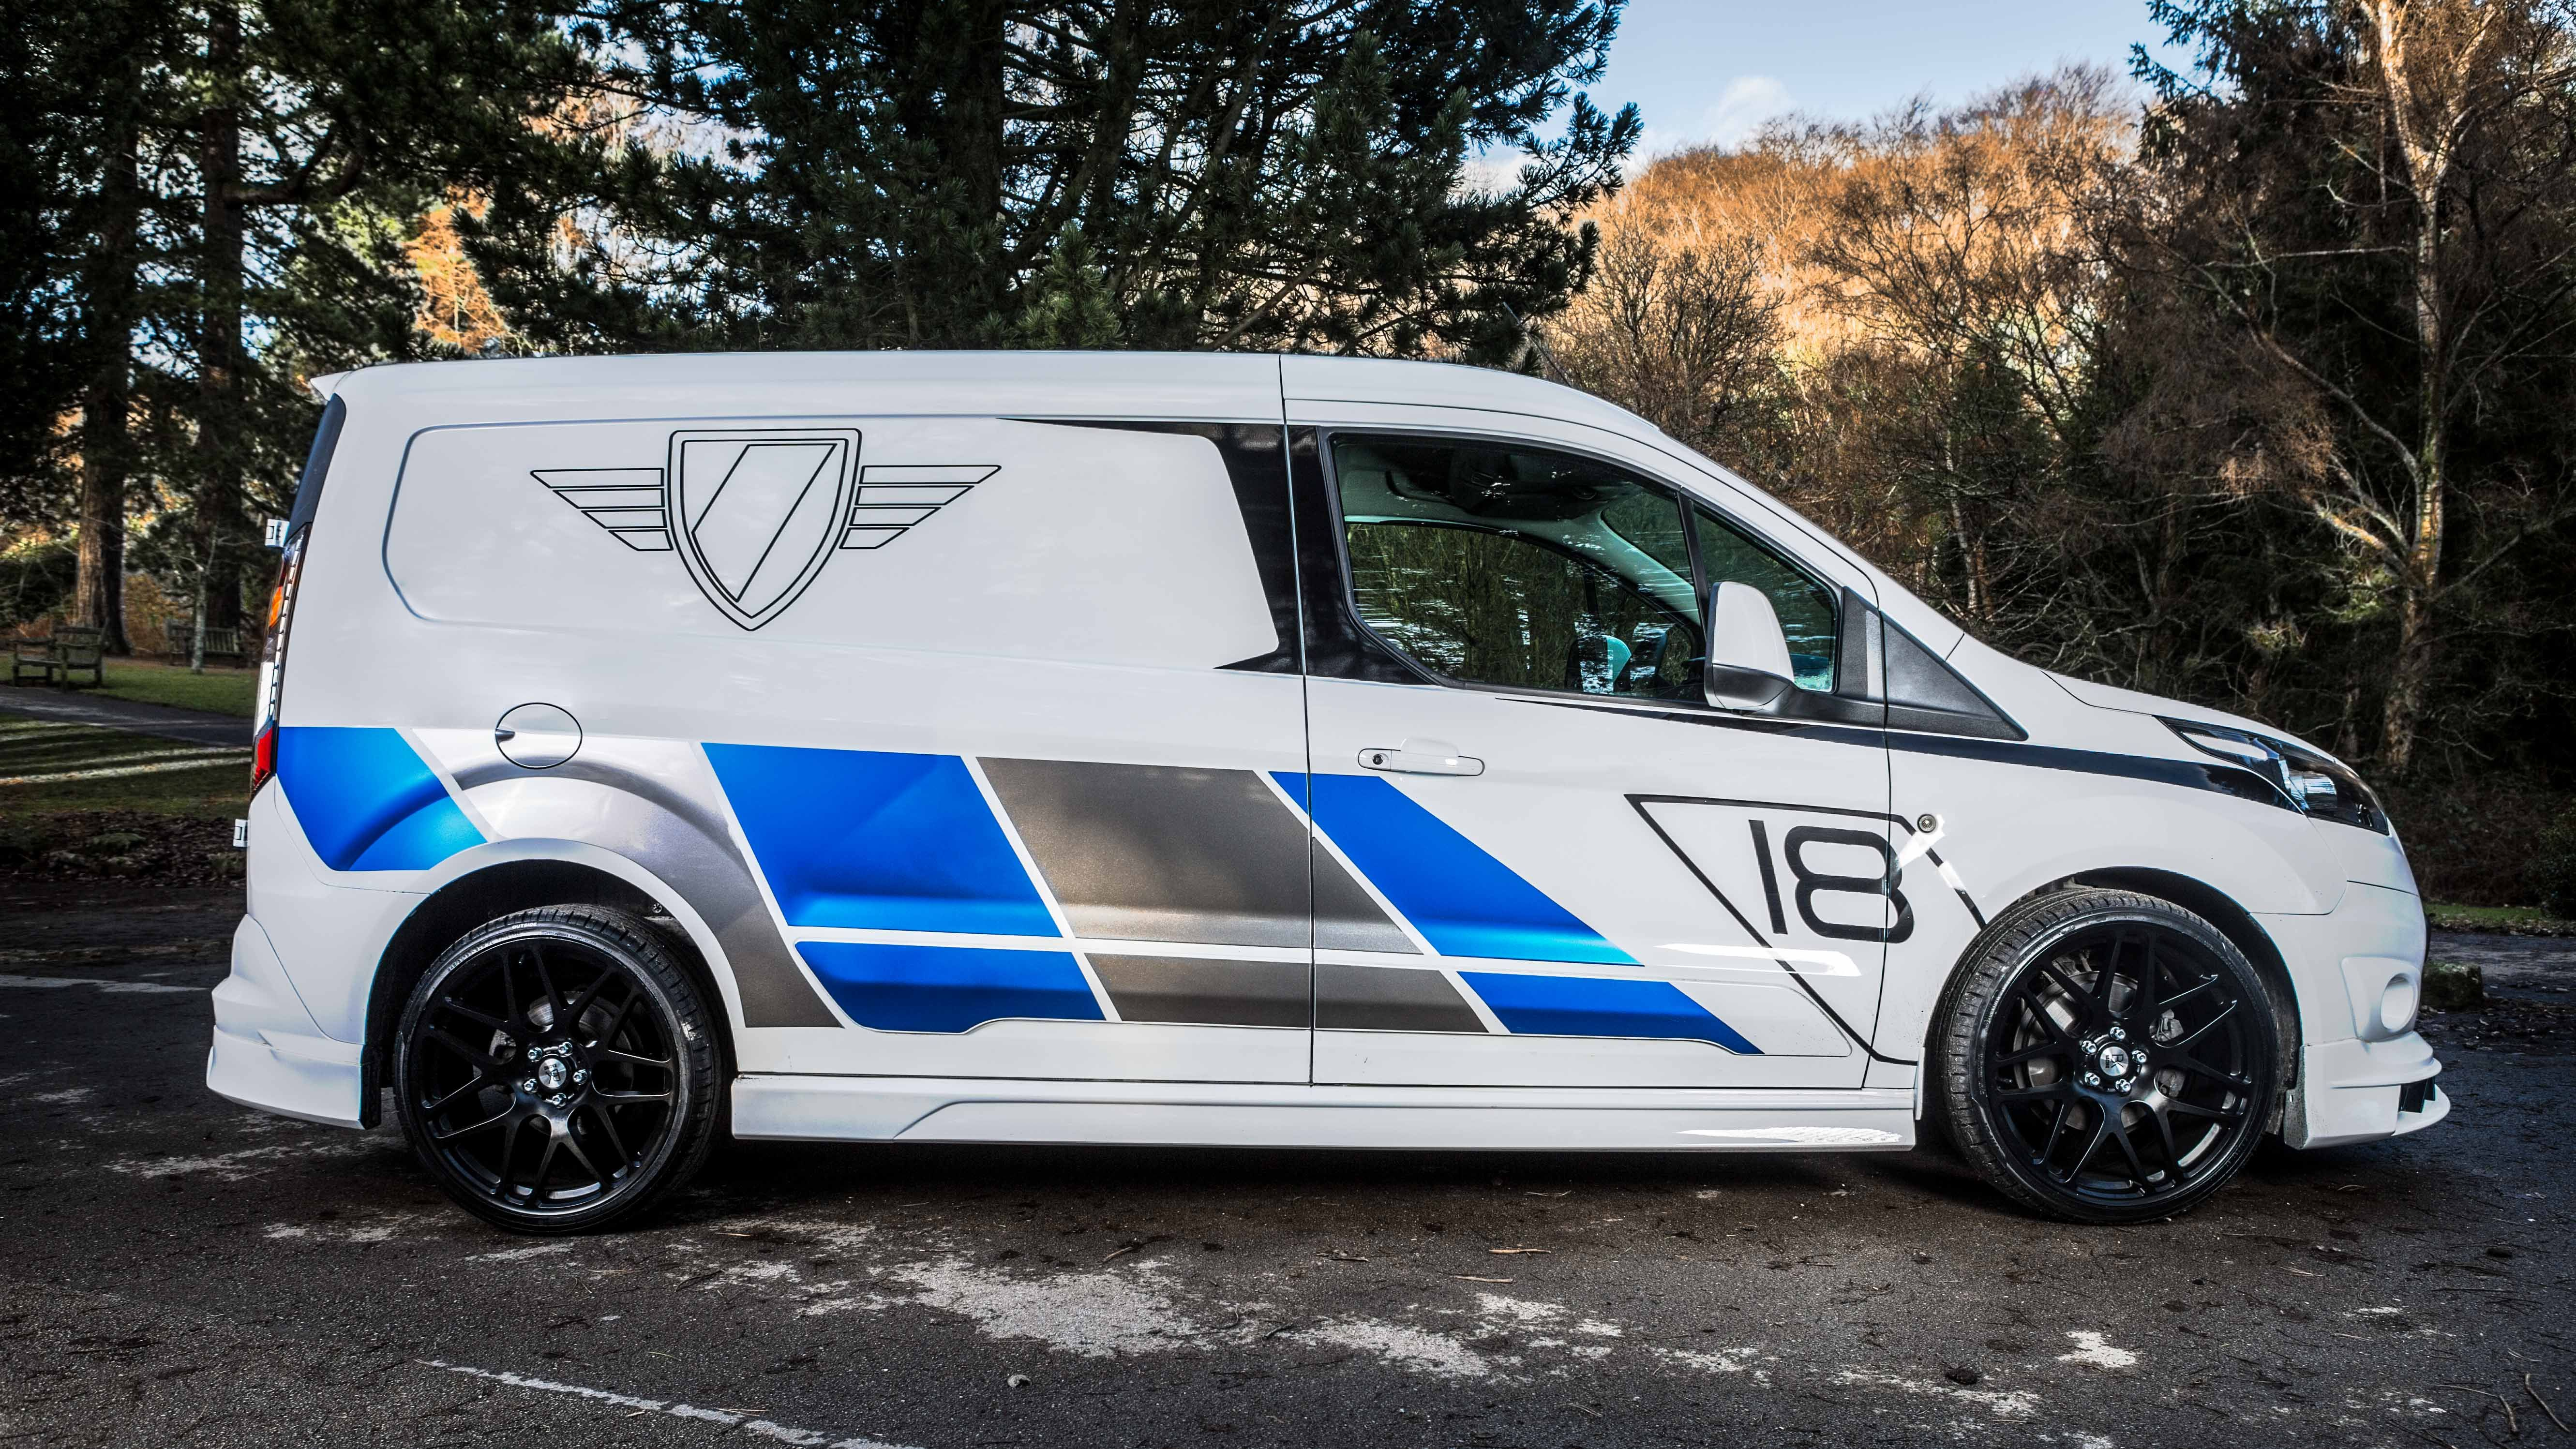 Ford Transit Connect Bodykit Designed By Xcluisve Customz Made